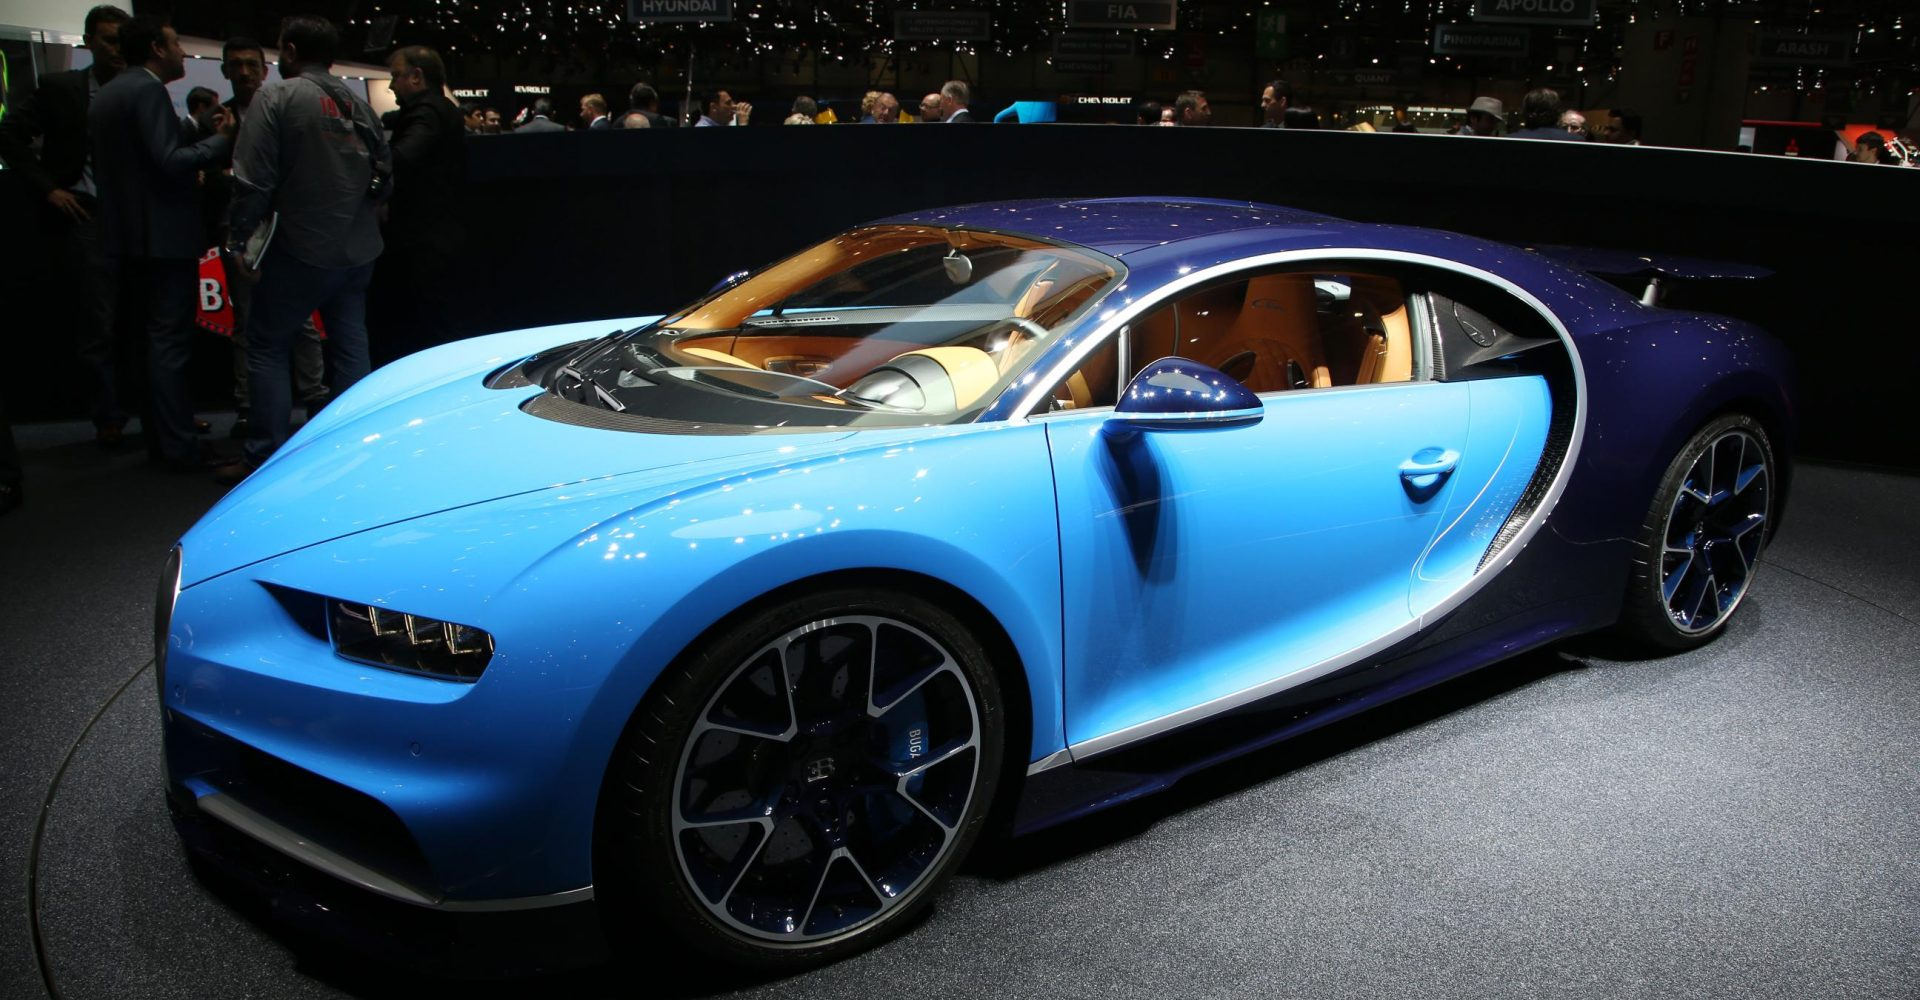 Next Bugatti Chiron will have to be electrified to beat current car's credentials